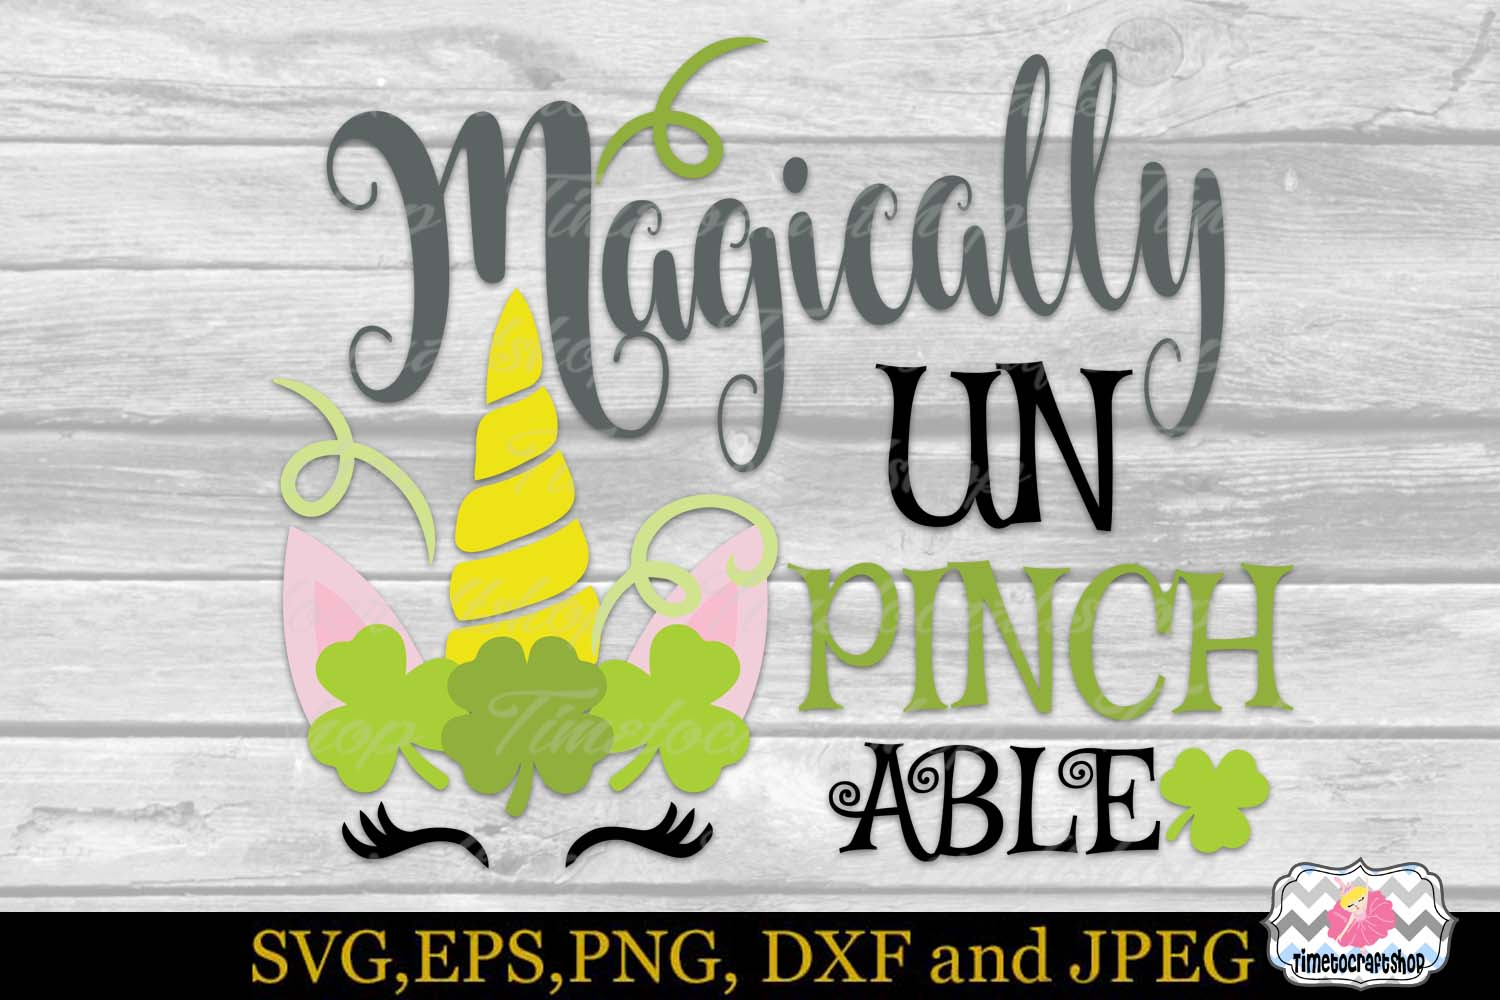 SVG, Dxf, Eps & Png St Patrick's Magically Unpinchable example image 2